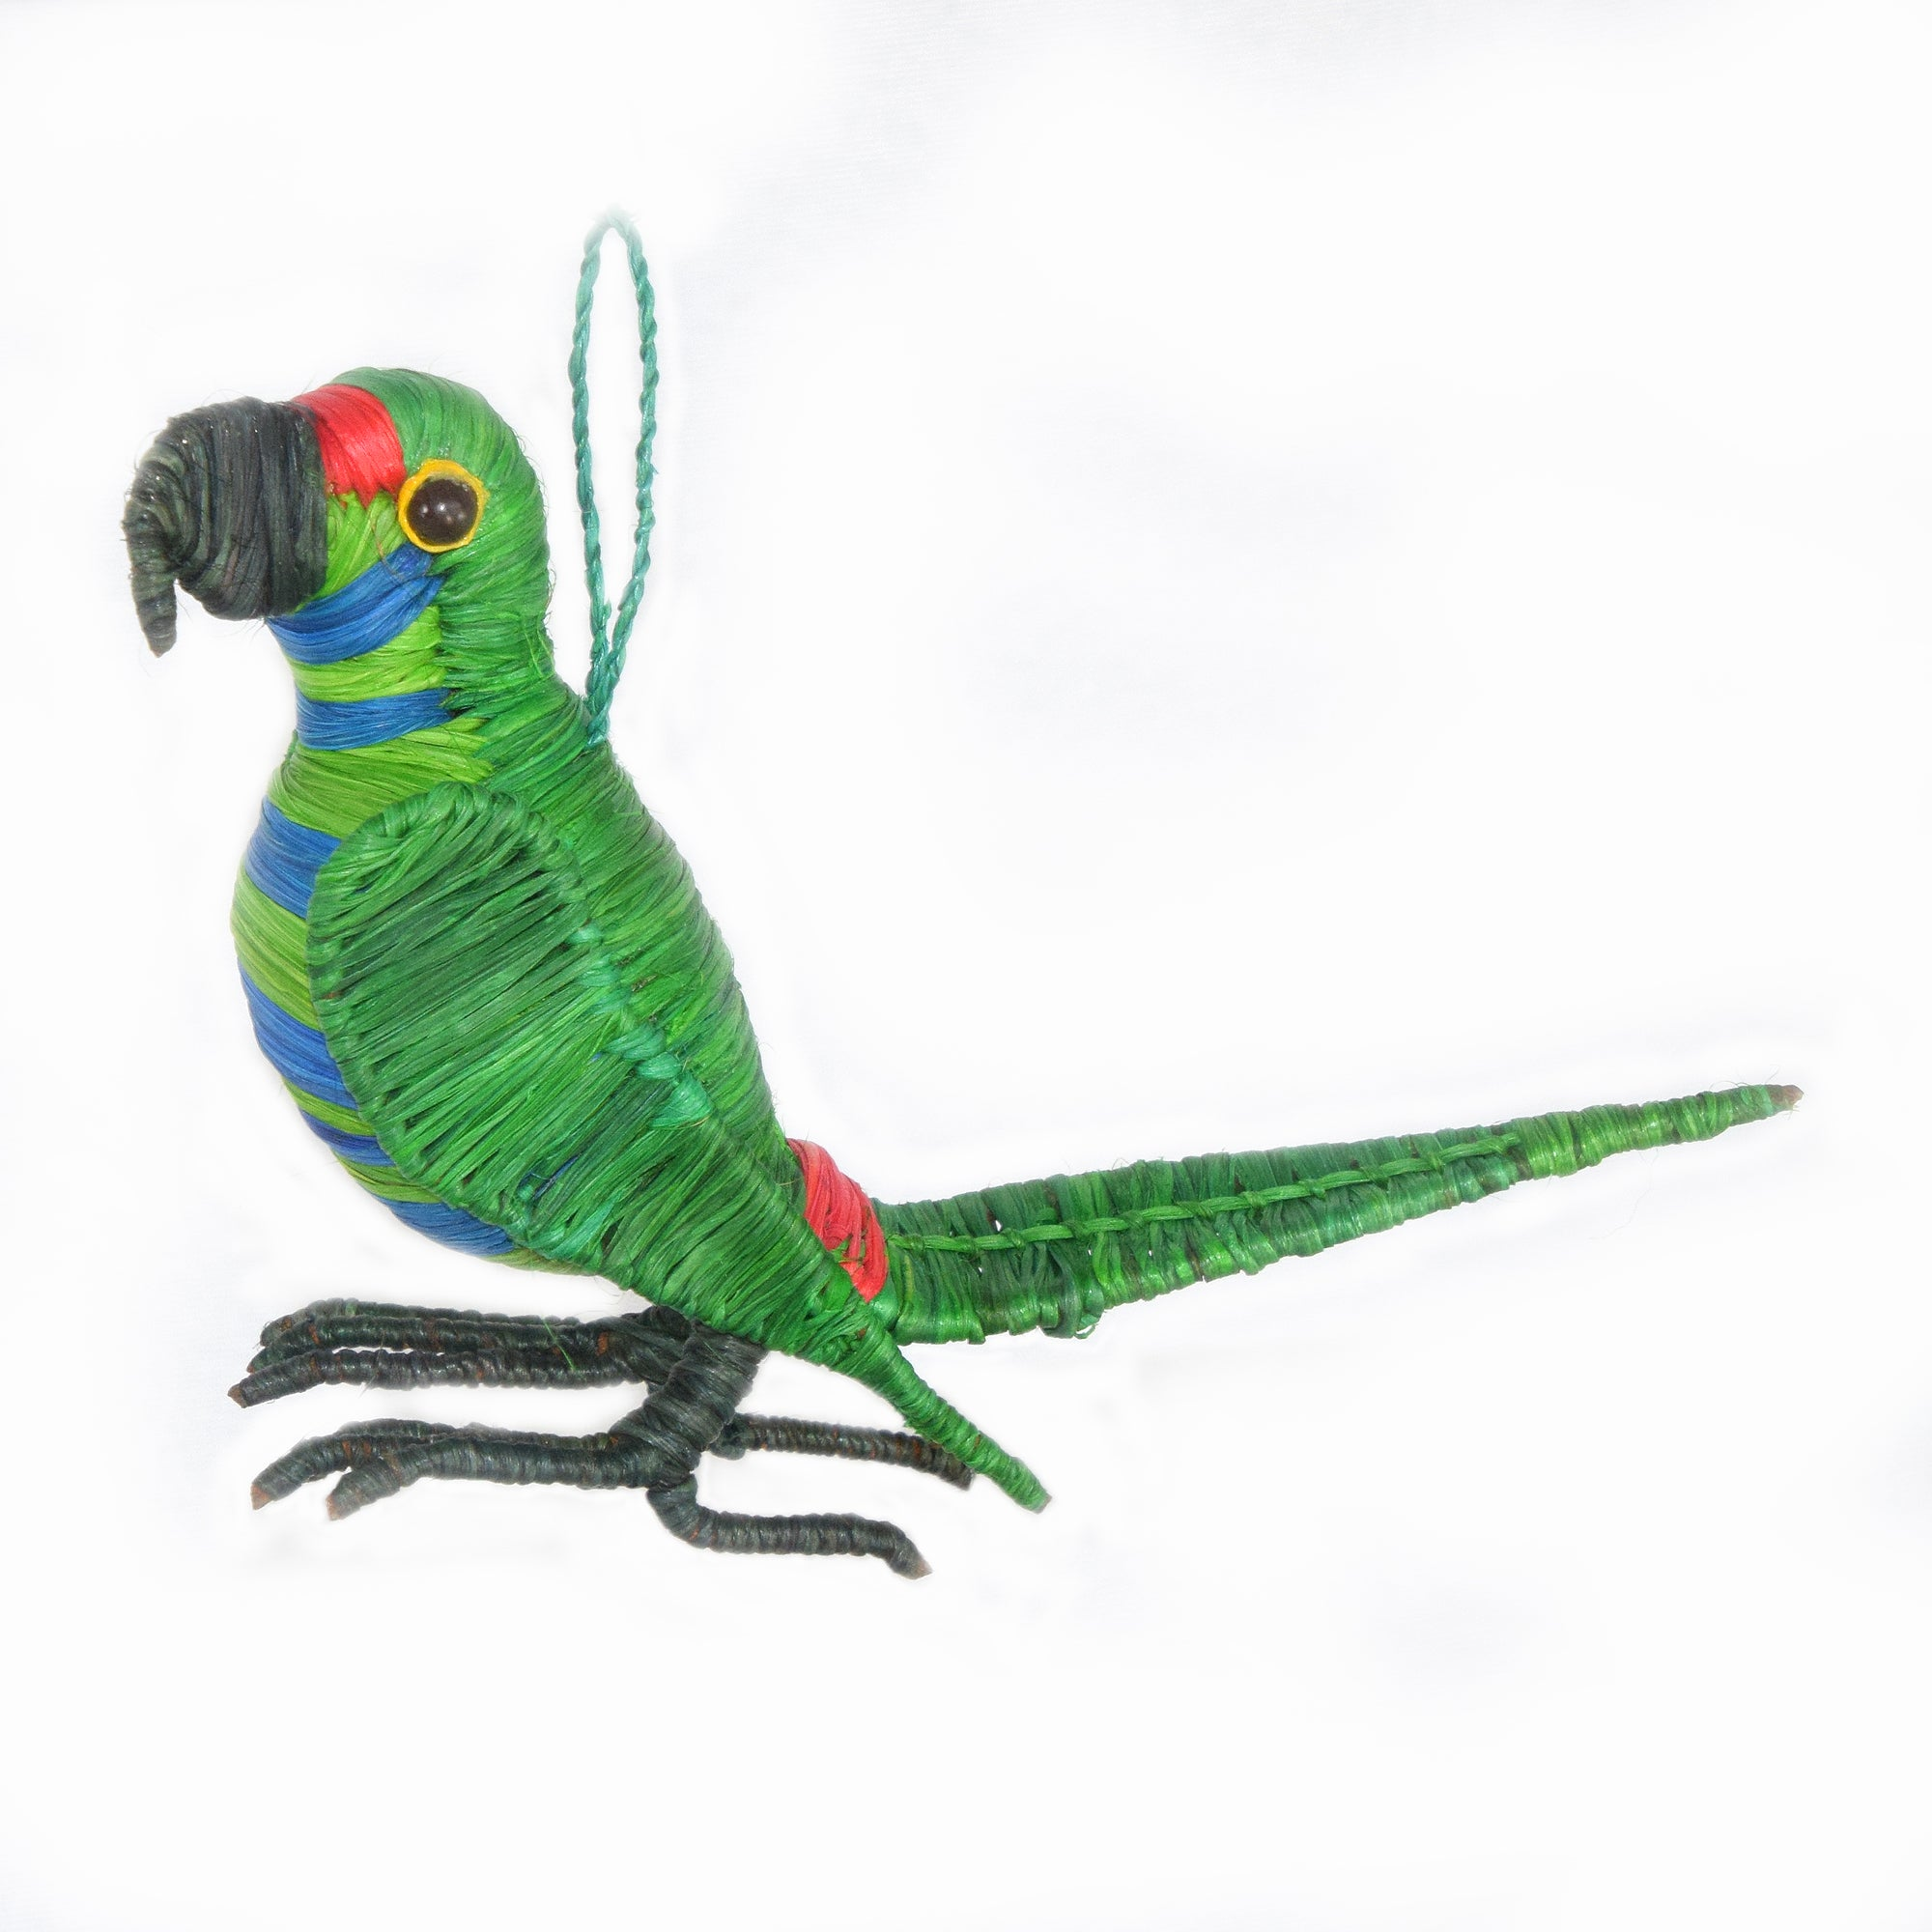 GREEN AND BLUE PARROT BIRD - FAIR-TRADE CHRISTMAS TREE ORNAMENT - WOVEN BY PERUVIAN AMAZON ARTISAN